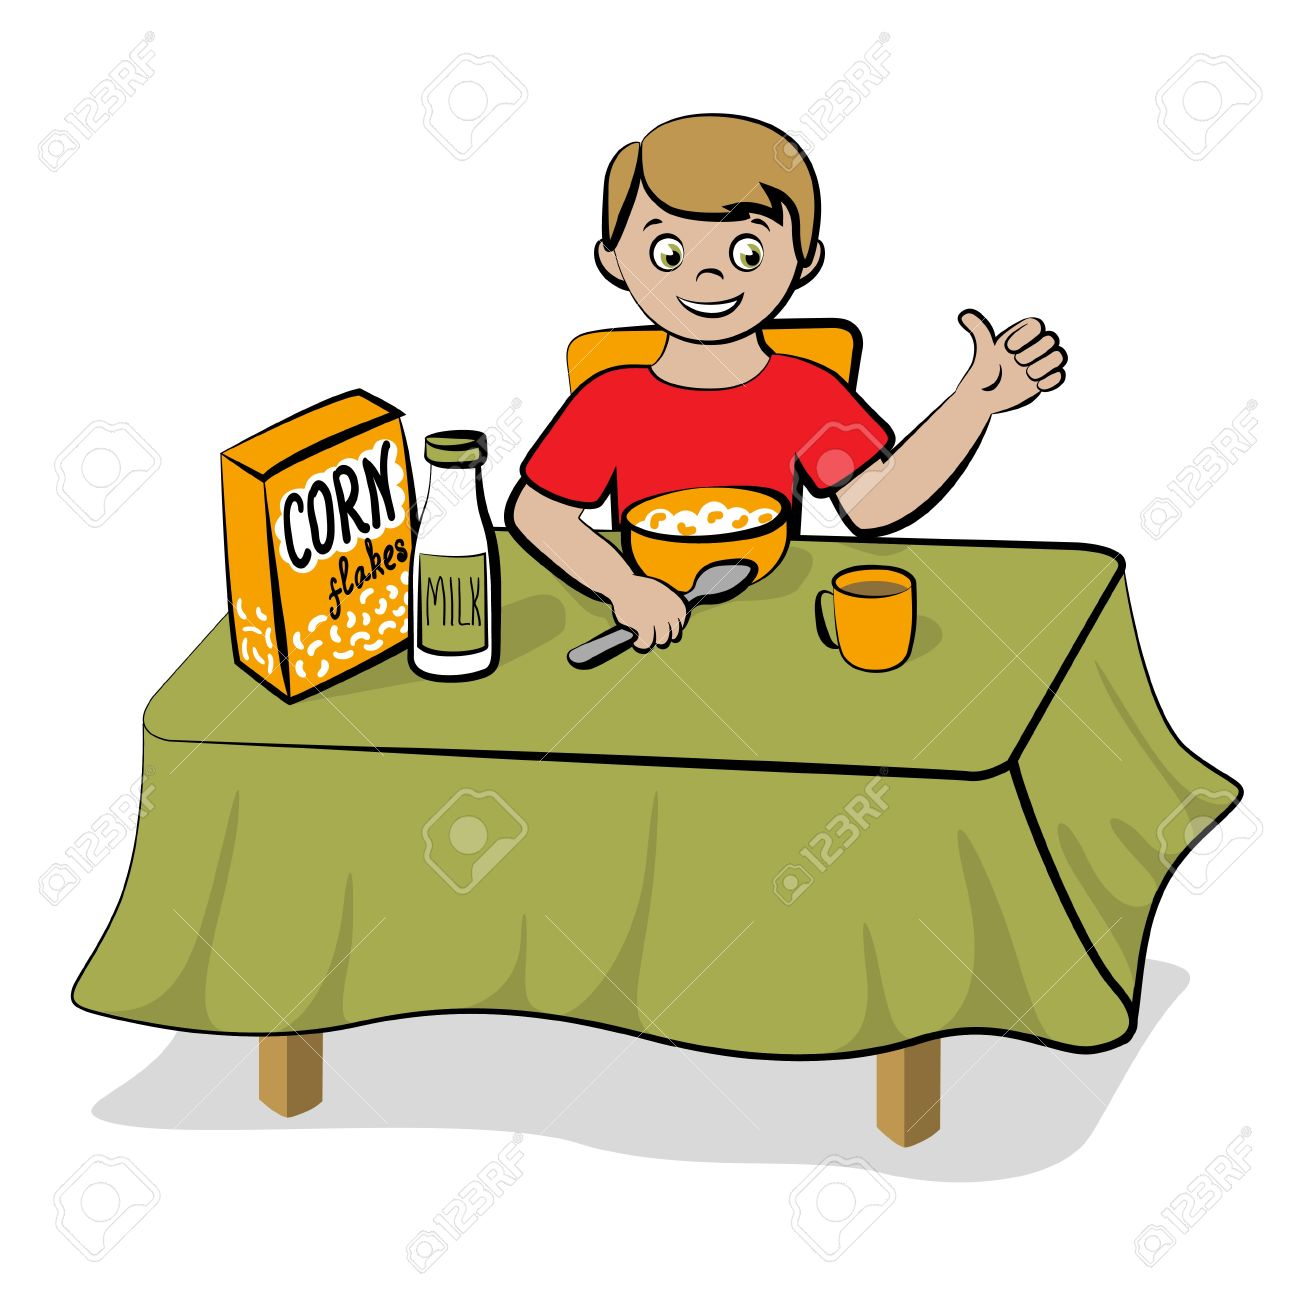 Have breakfast clipart.